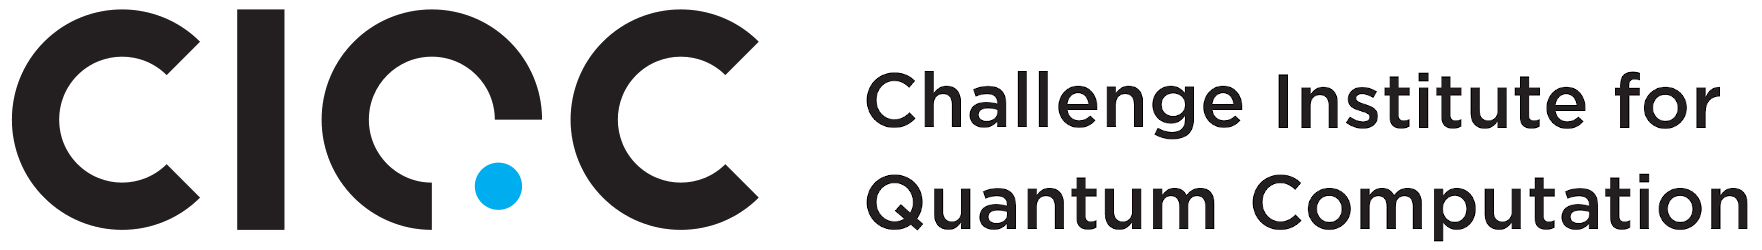 Challenge Institute for Quantum Computation